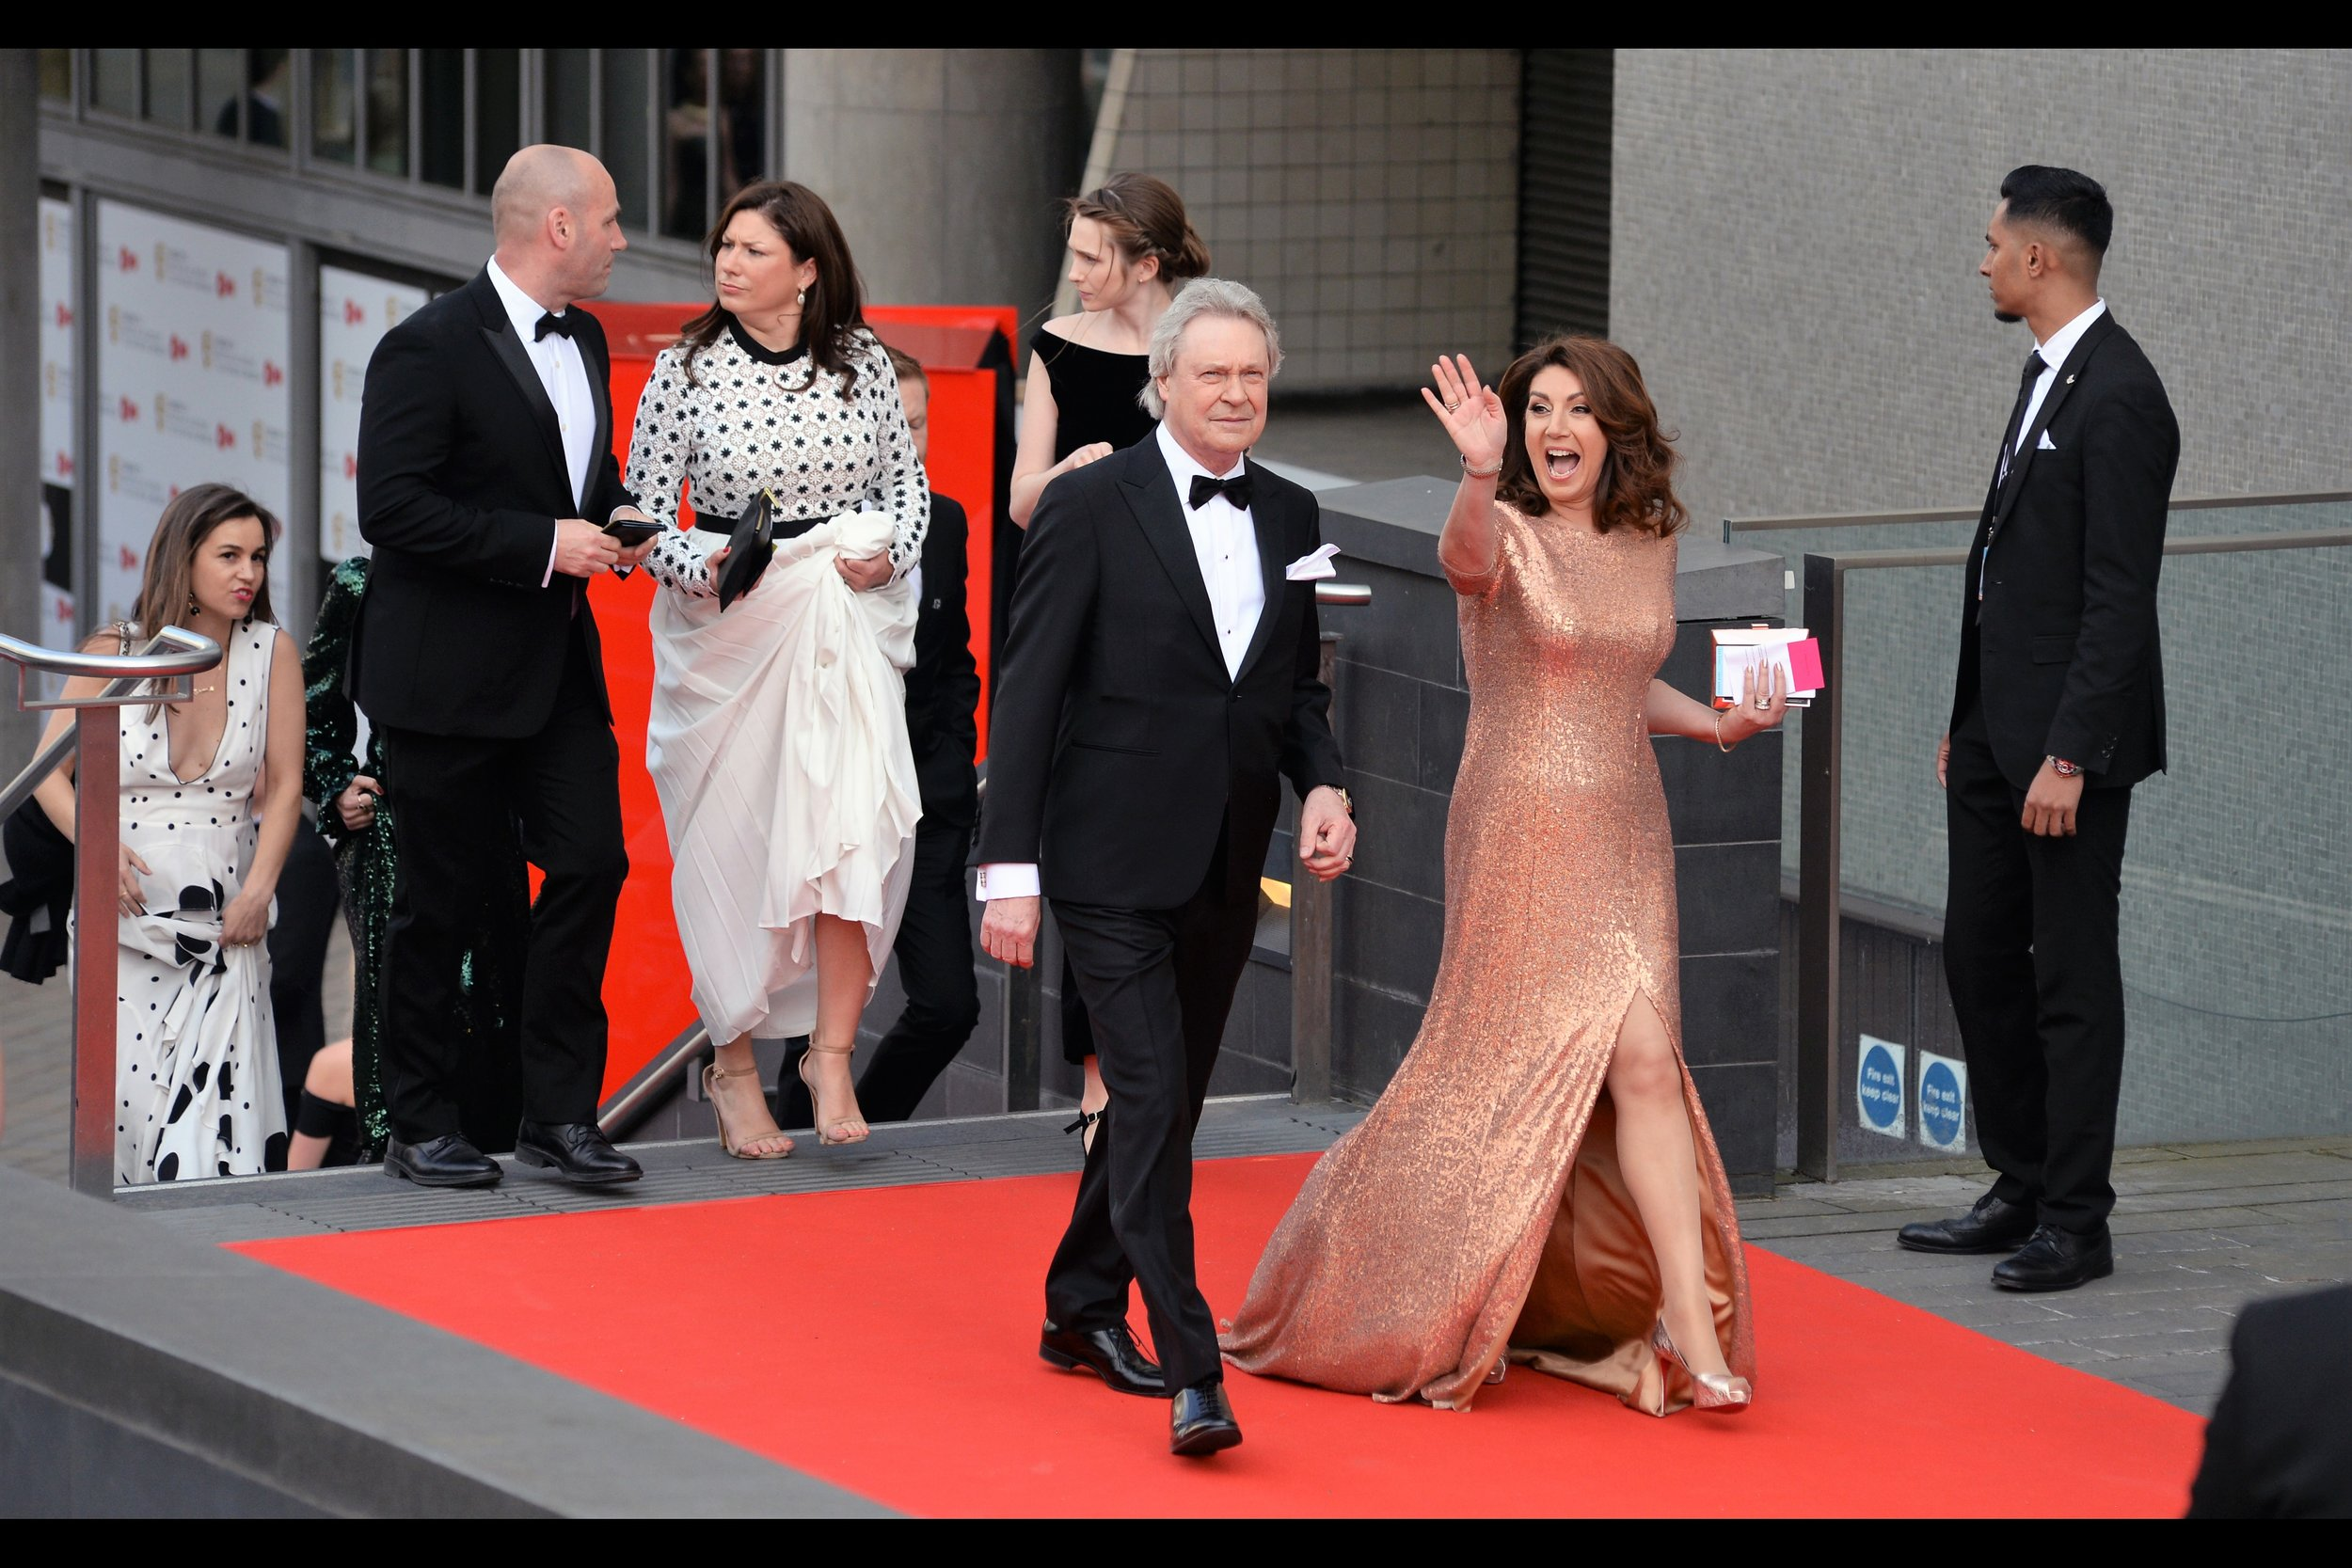 """Hi guys.. this dress is solid copper and weighs a ton and I still have another flight of stairs to go.... so let's not get all worked up about how awesome it must be to be famous"" . Sadly, I don't know who this is,but she might have a point about fame.  (edited to add : ""Jane McDonald"") (edited to edit : ""Cruising With Jane McDonald"" won the 'features' Bafta on the evening)"